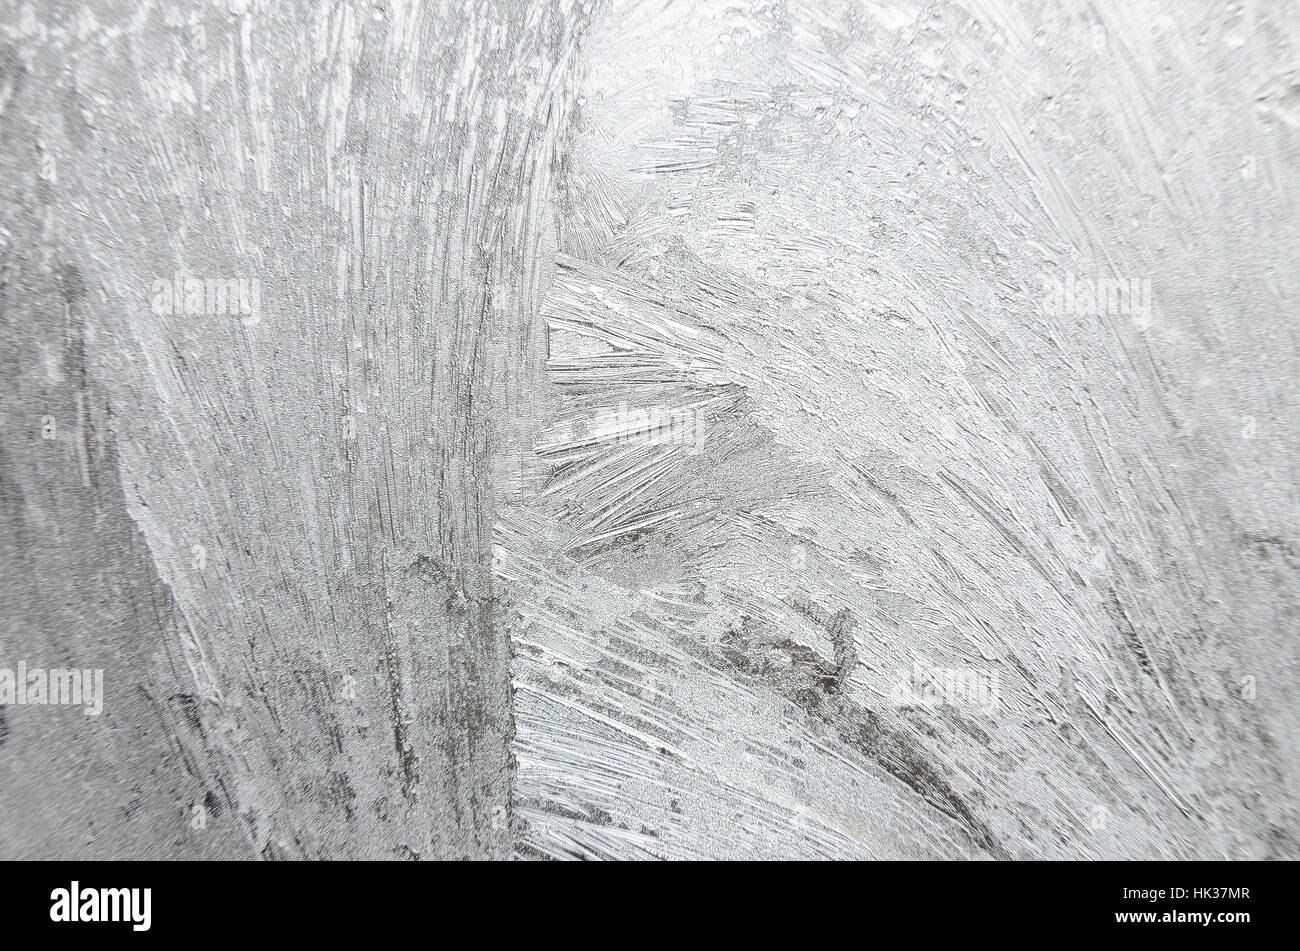 Surface of windowpane with frostwork as a background - Stock Image